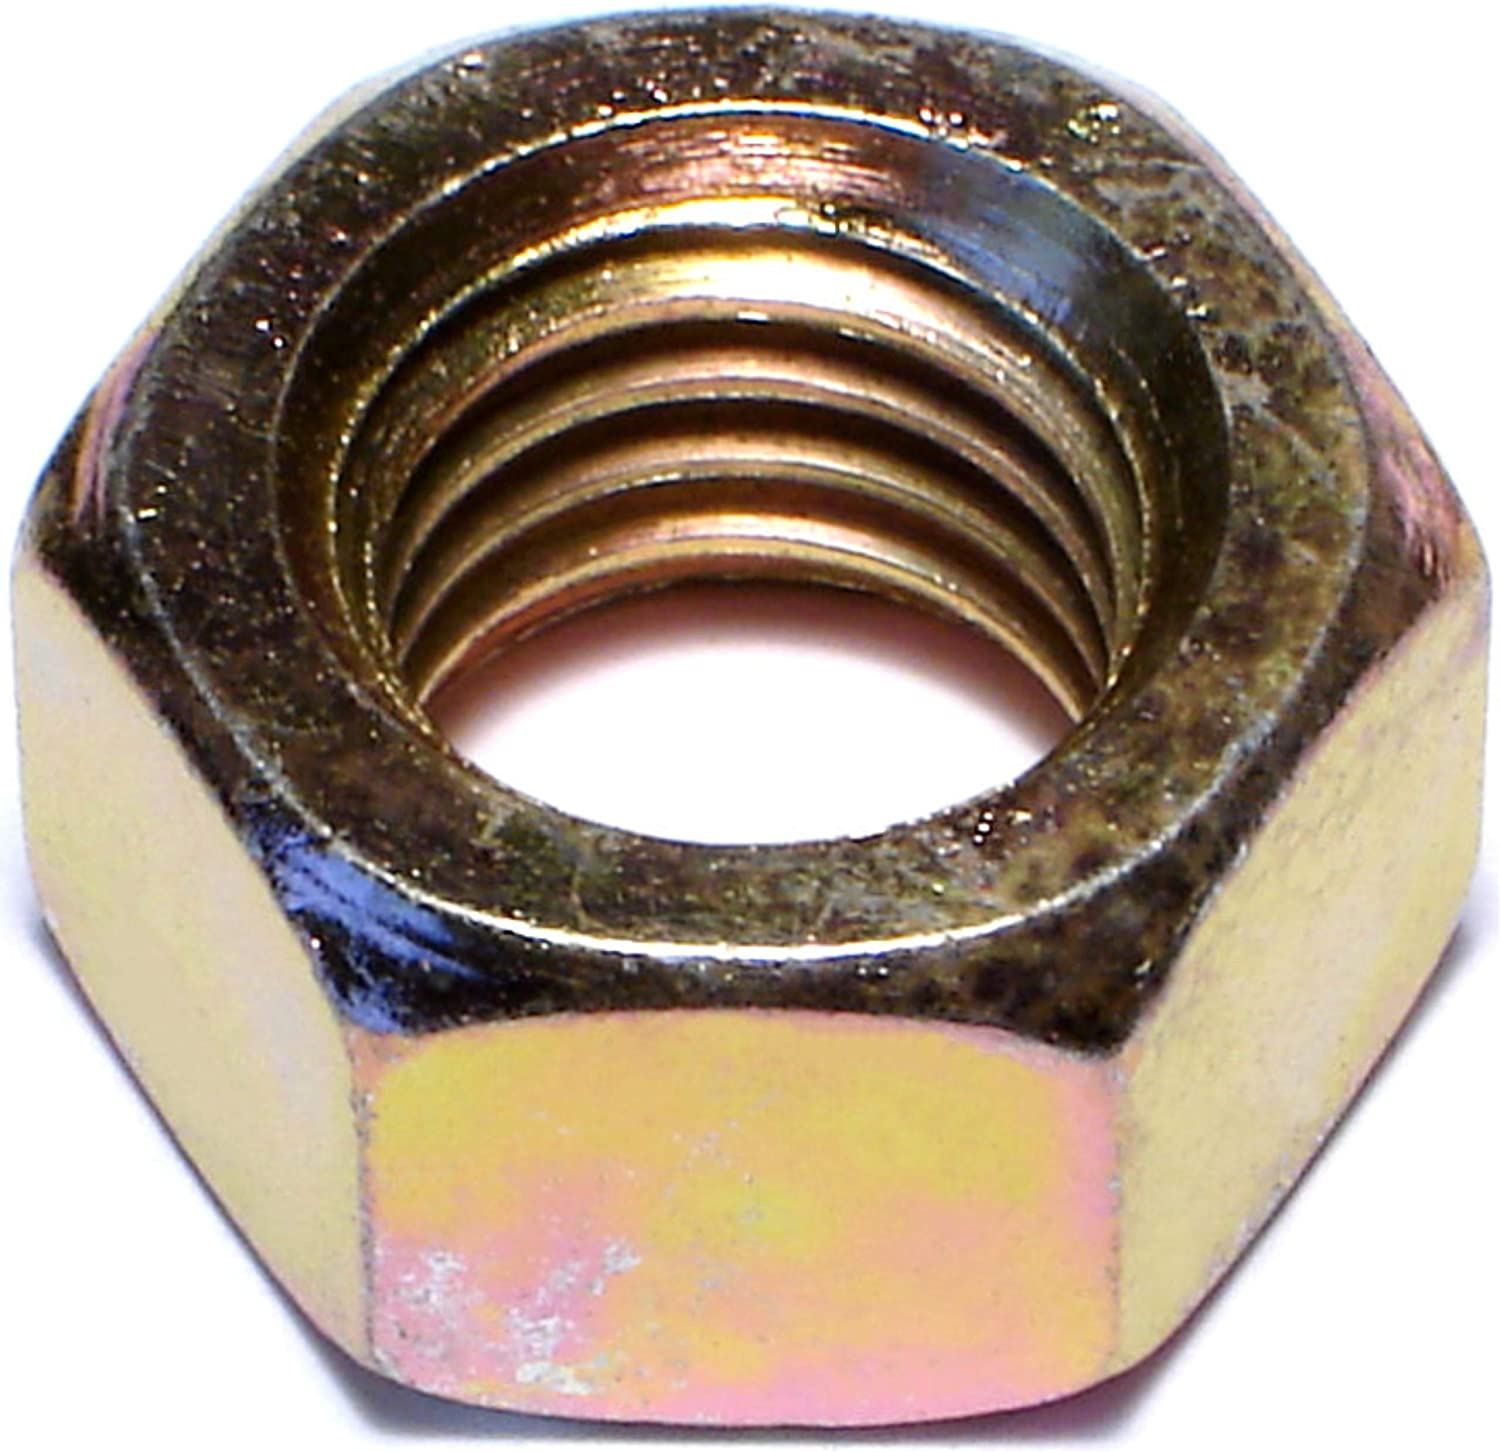 5//8-11 Flange Lock Nuts Yellow 5 5//8-11x2 Grade 8 Hex Flange Bolts /& 5